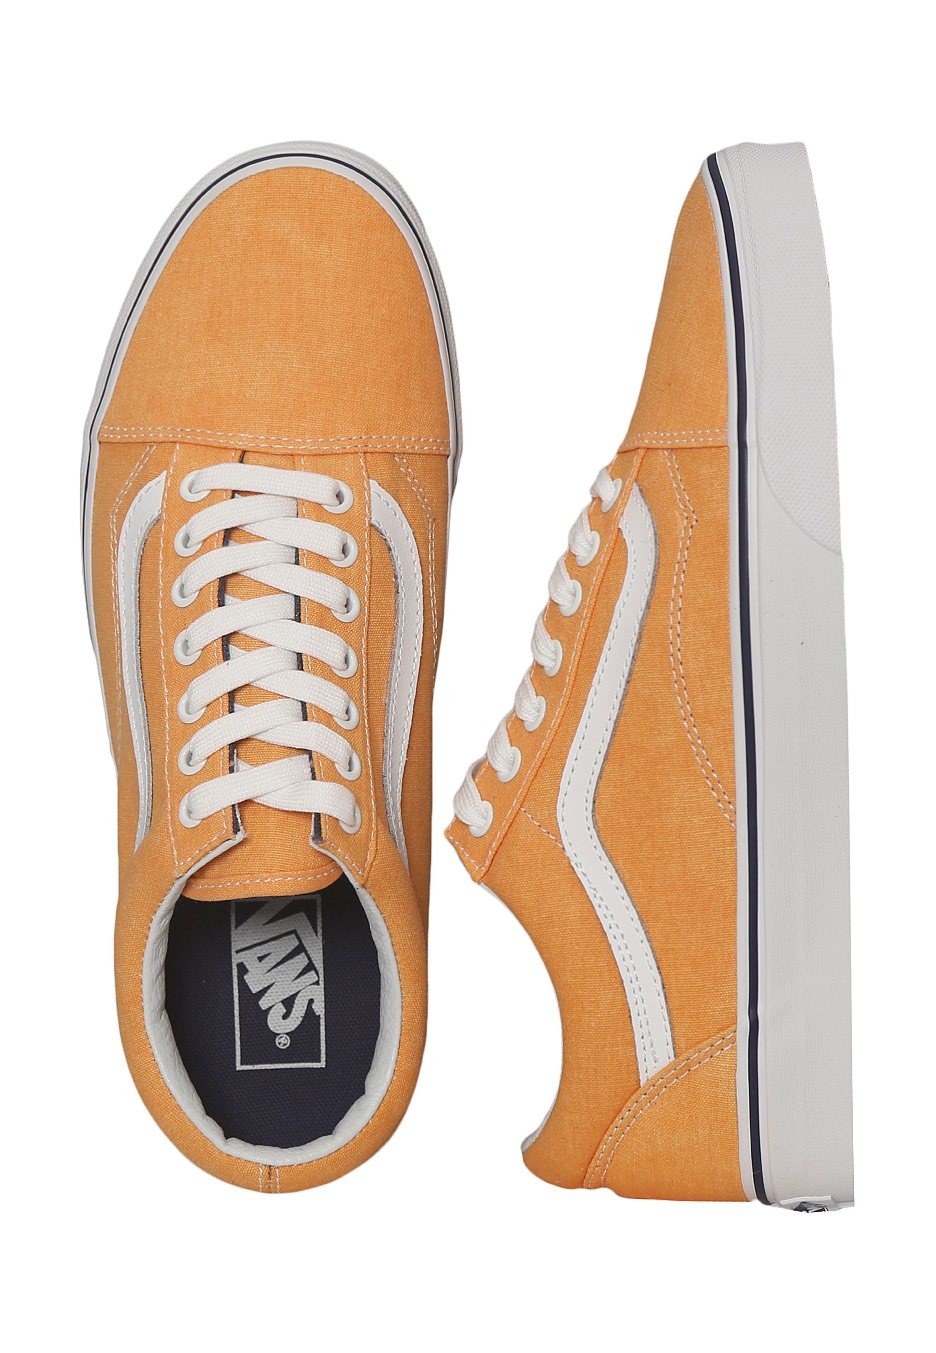 ab58483bd0 Vans - Old Skool Washed Canvas Citrus Crown Blue - Shoes - Impericon.com  Worldwide